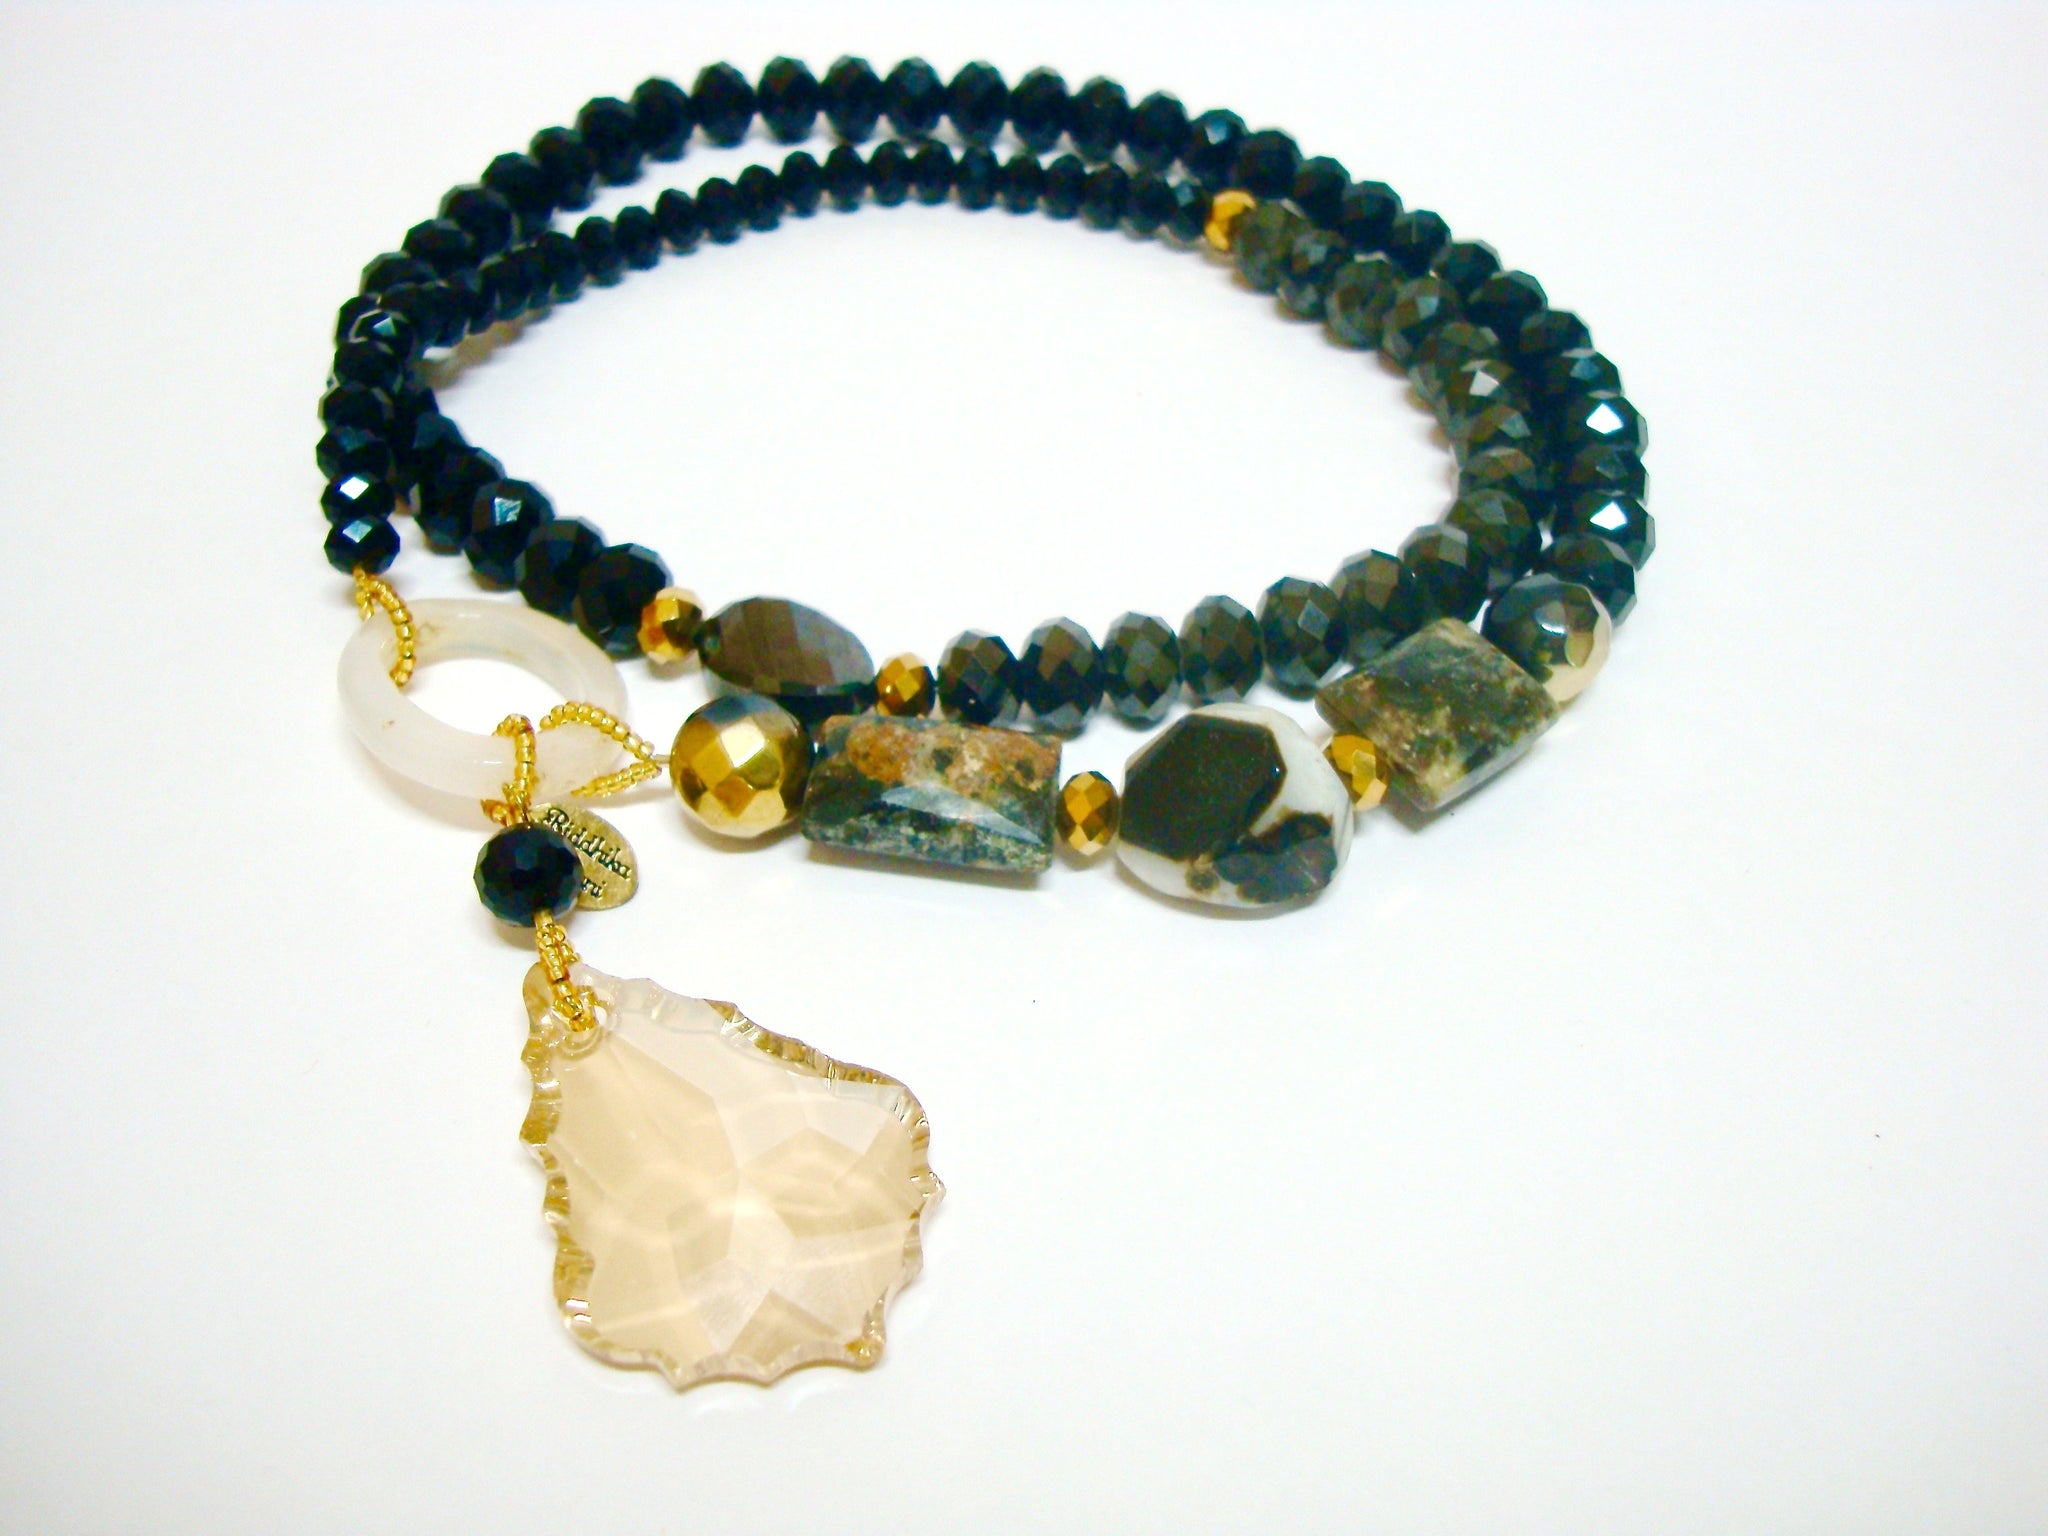 Signature Beaded Pitch Black Necklace - Riddhika Jesrani